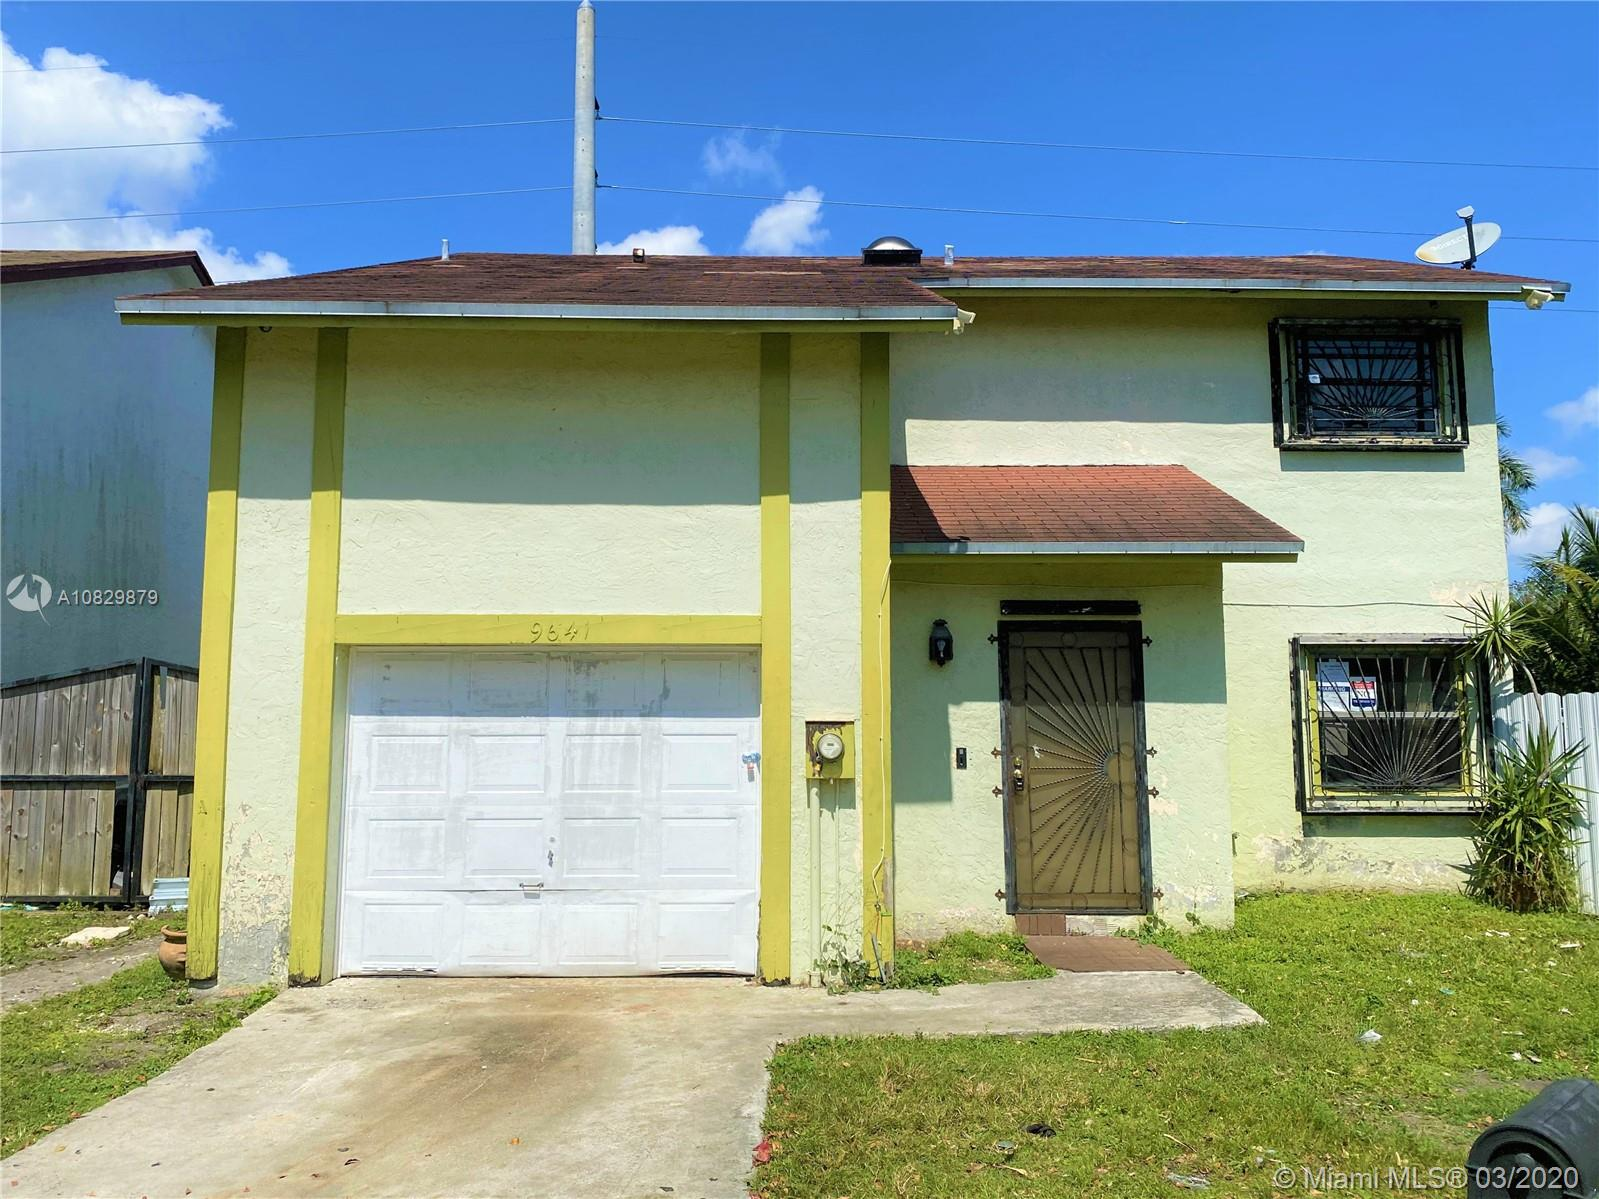 29641 SW 158th Pl Property Photo - Homestead, FL real estate listing